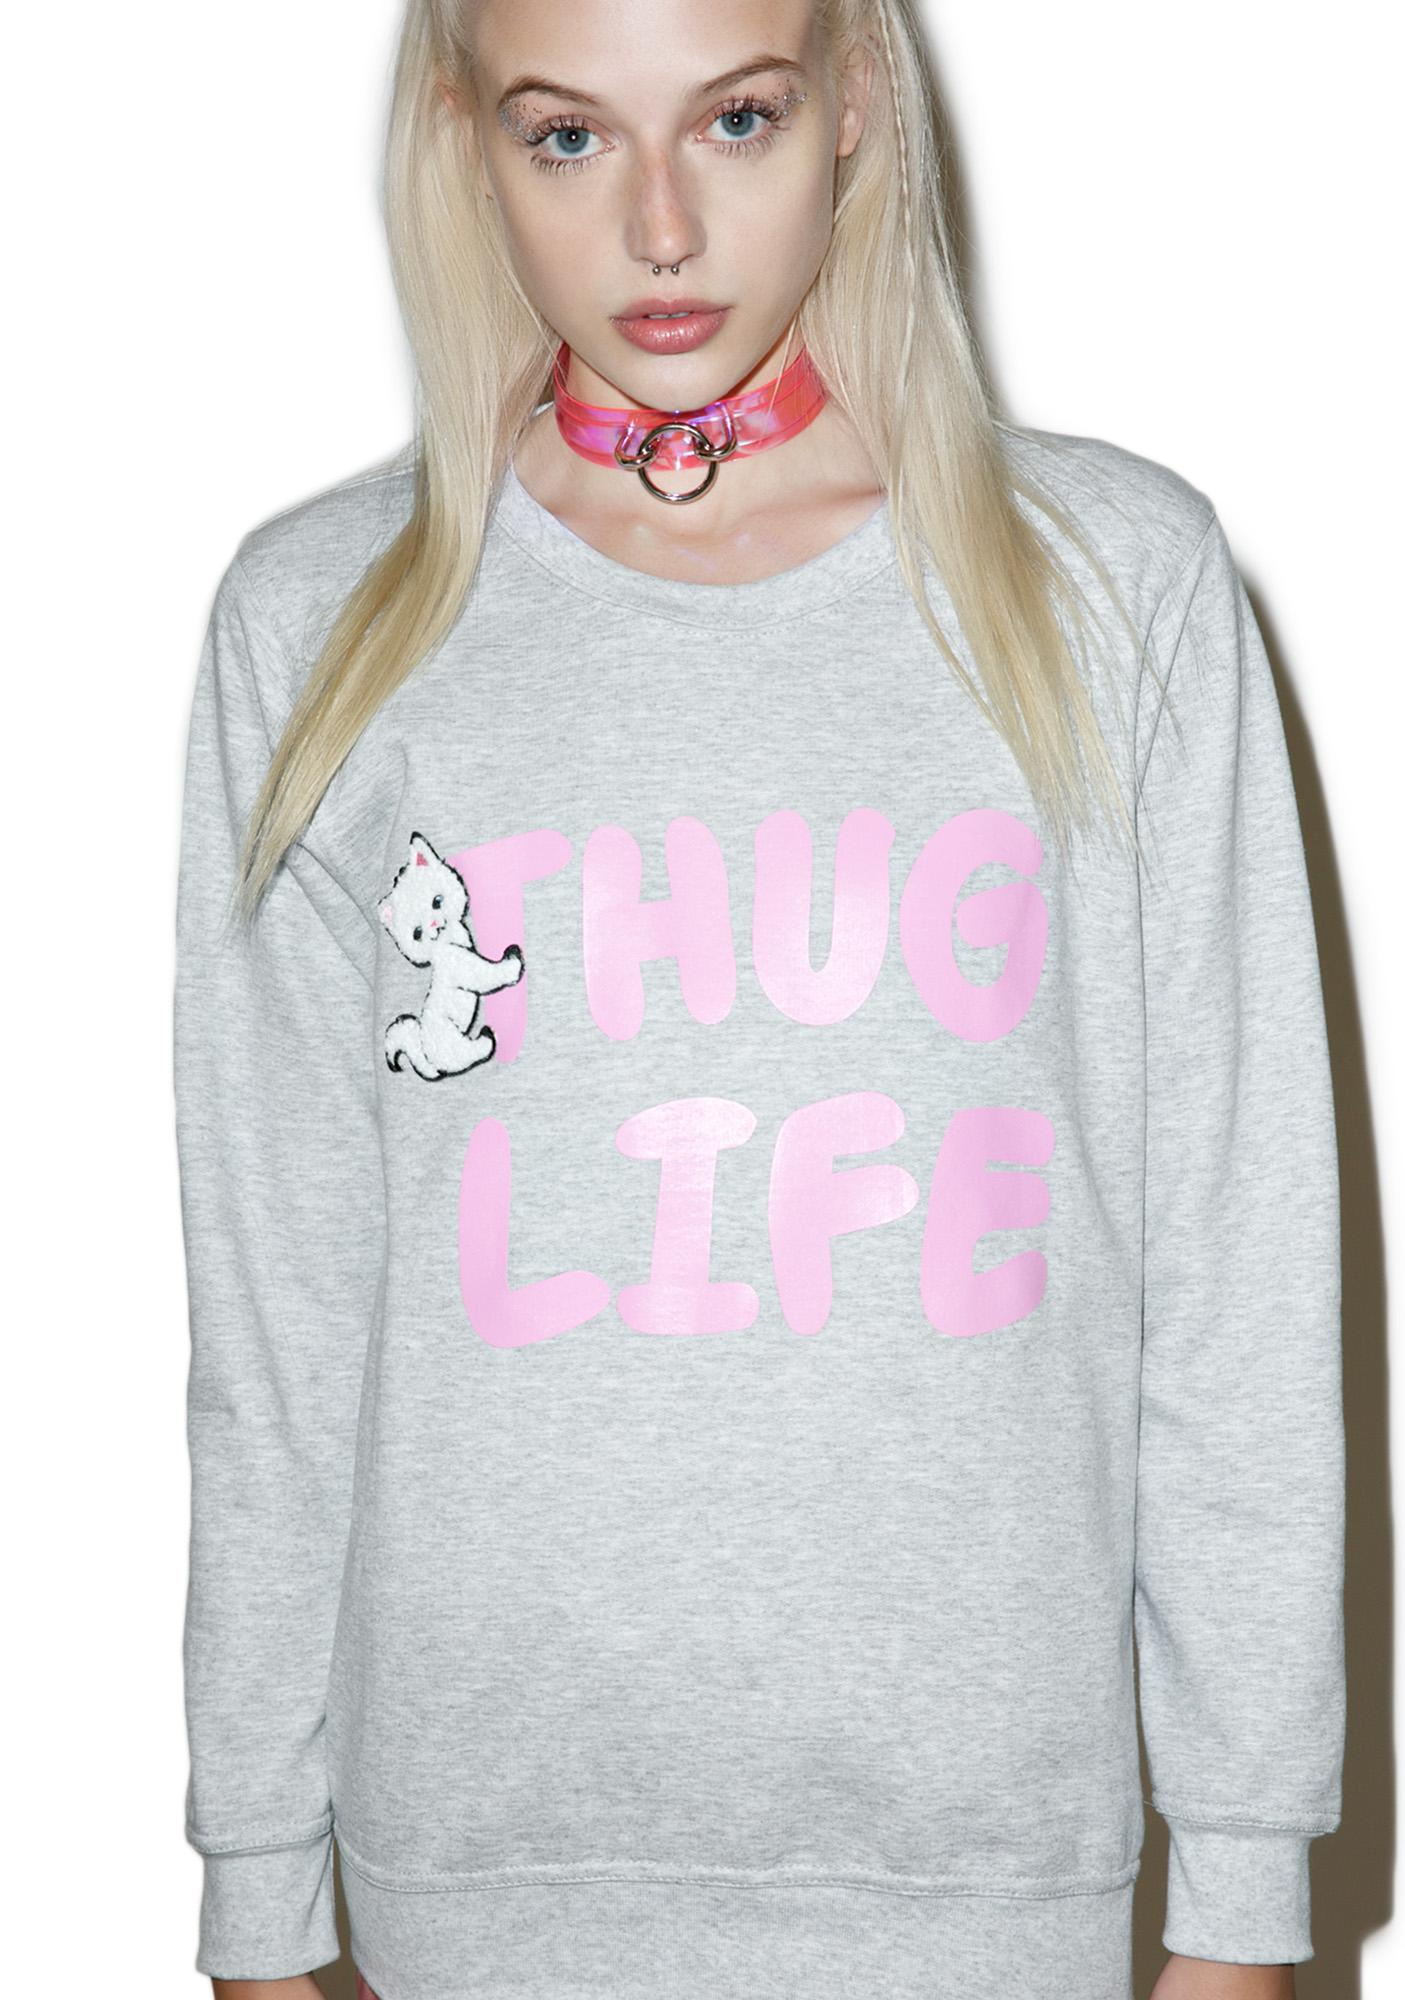 Local Heroes Thug Life Sweatshirt